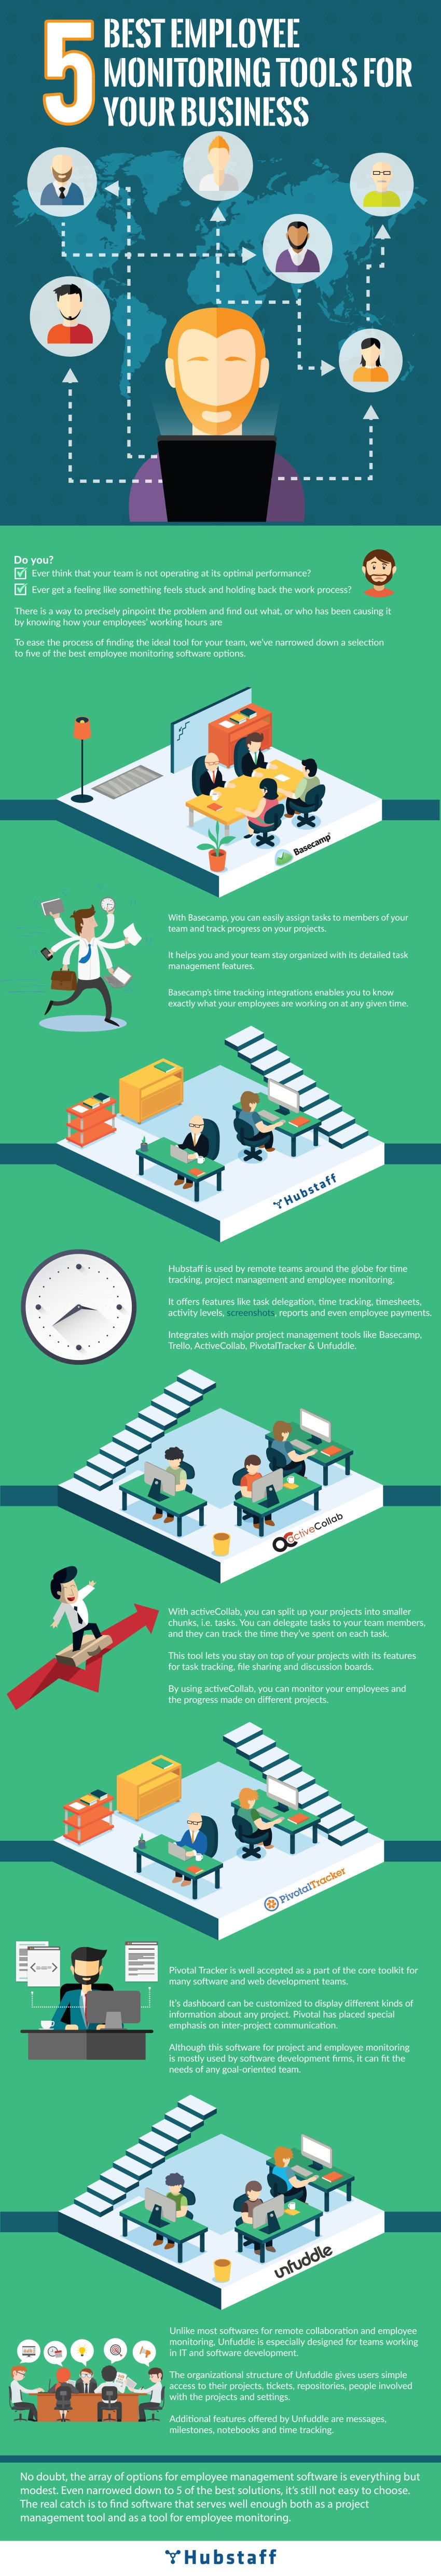 5 Best Options for Remote Employee Monitoring Software [Infographic]